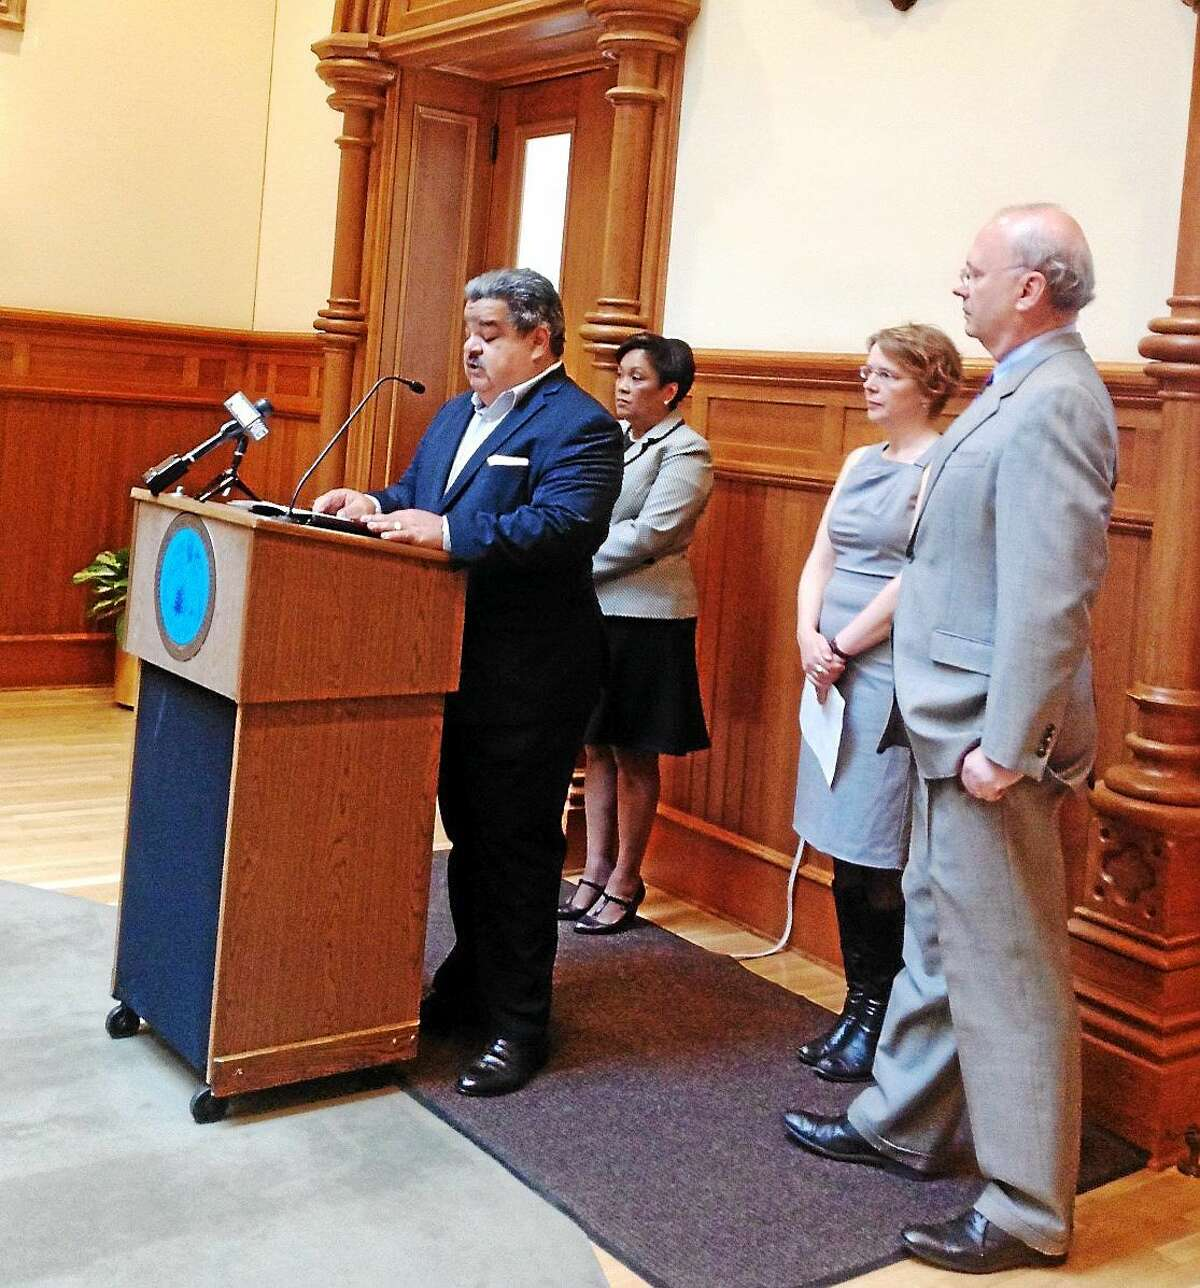 John Padilla of New Paradigms talks about how to increase employment in New Haven. Behind him, from left, are Mayor Toni Harp, Mary Reynolds of New Haven Works and city Economic Development Administrator Matthew Nemerson.